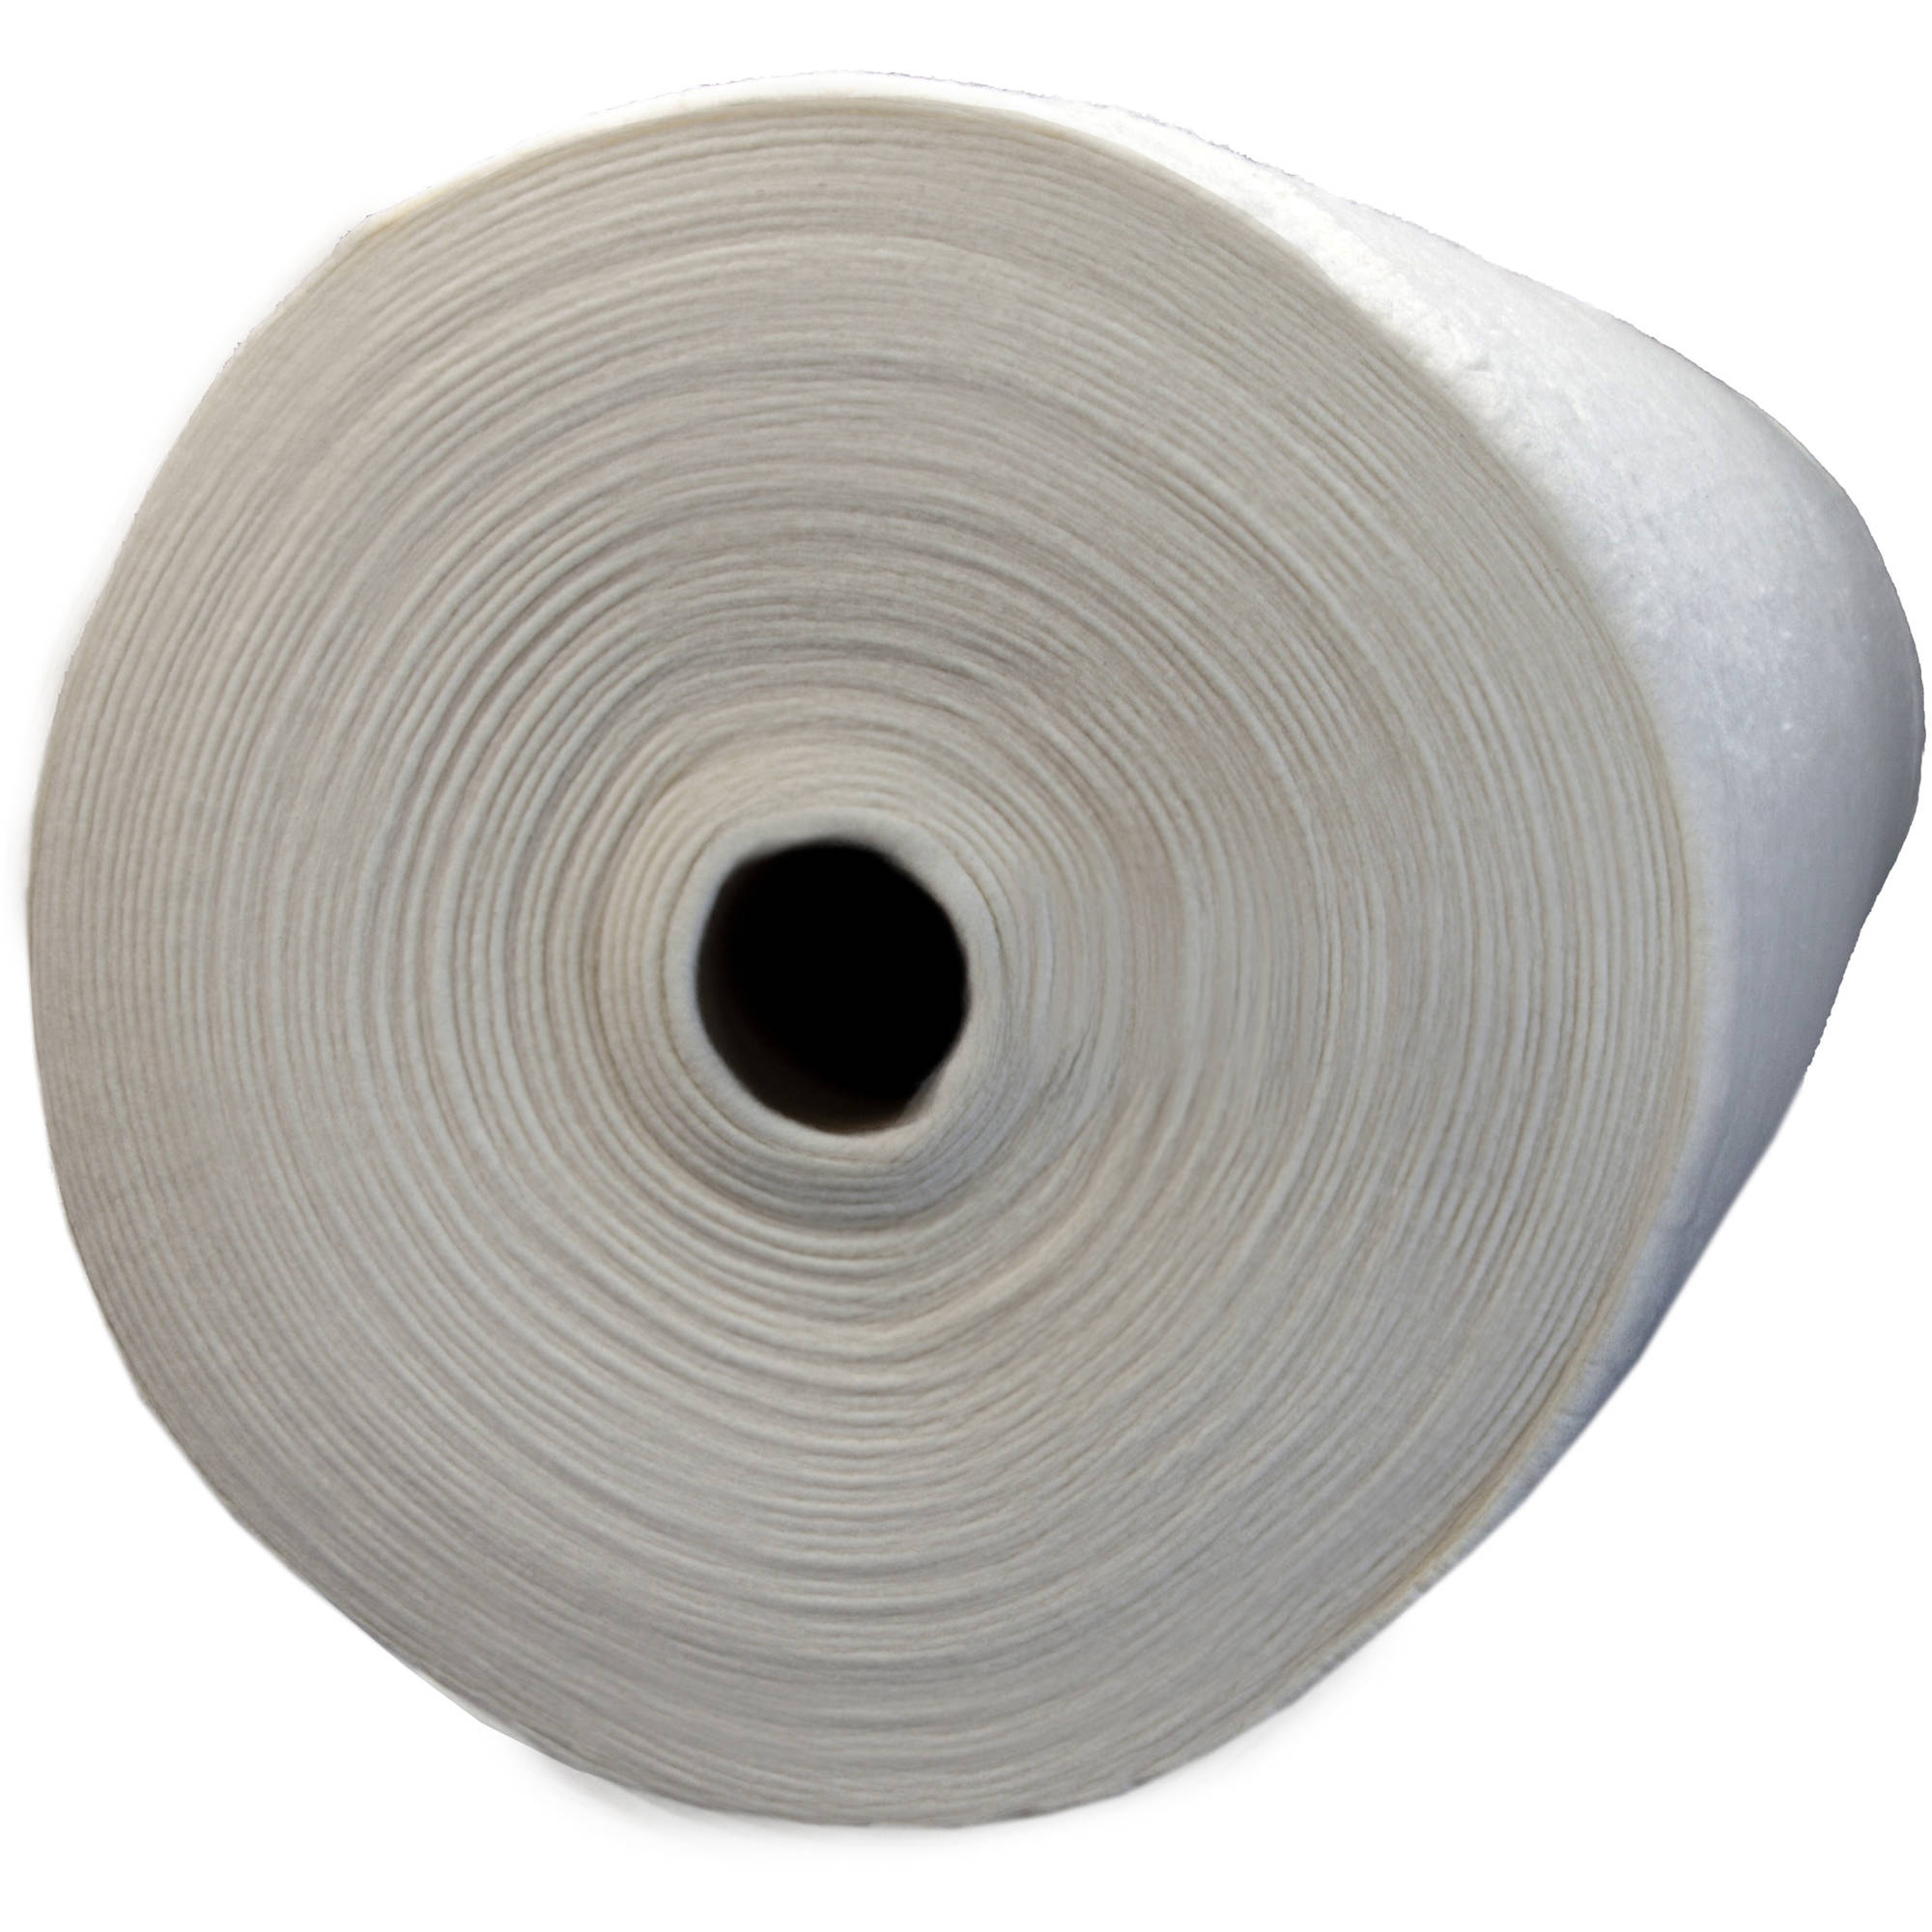 "Pellon Natures Touch Natural Blend 80/20 Batting with Scrim, 96"" Wide, 30 Yard Roll"